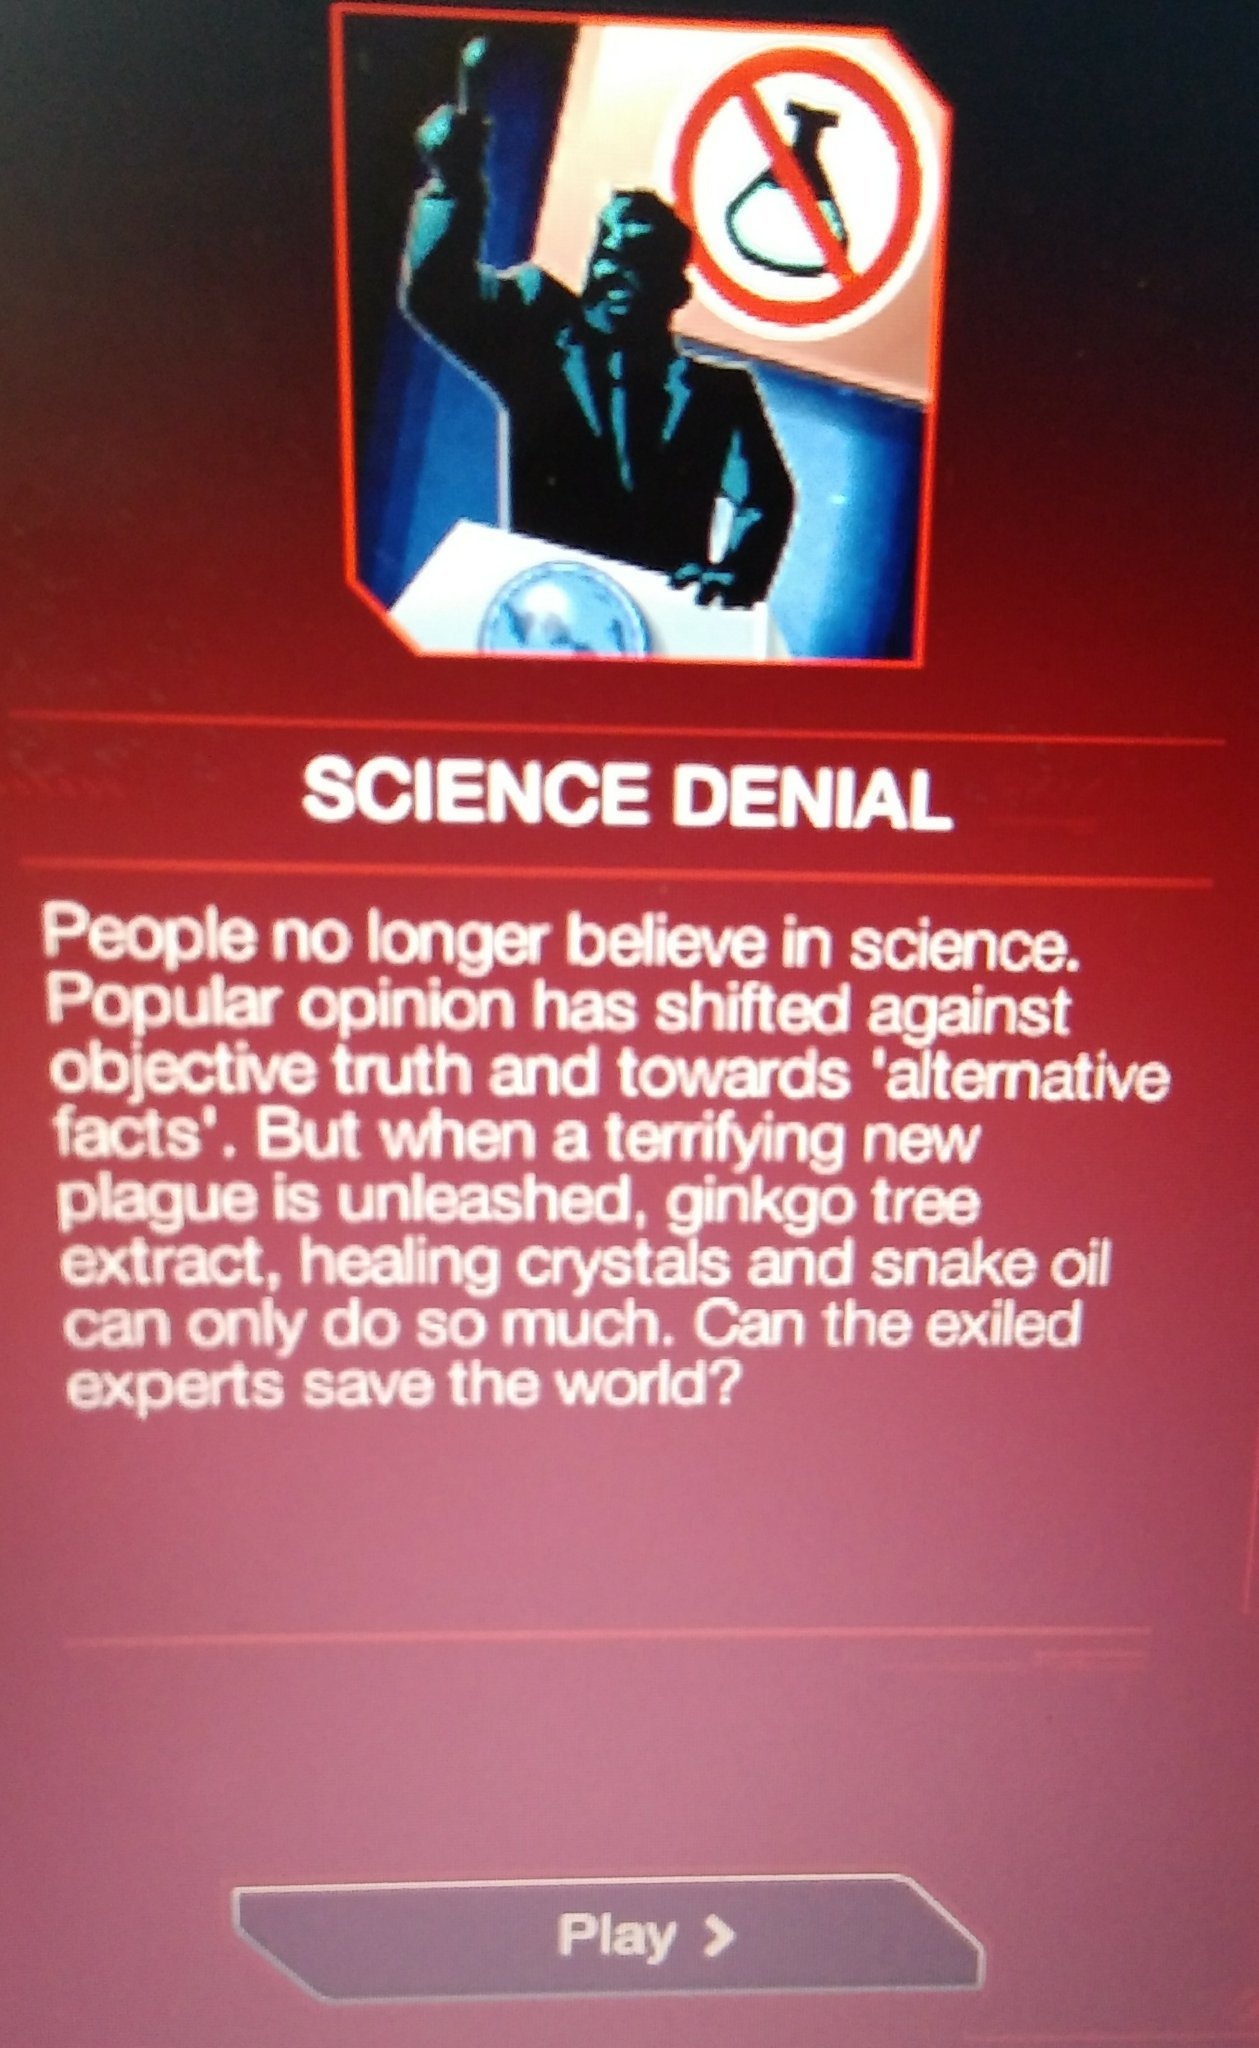 They actually did it! Anti-vax mode in Plague Inc! - meme